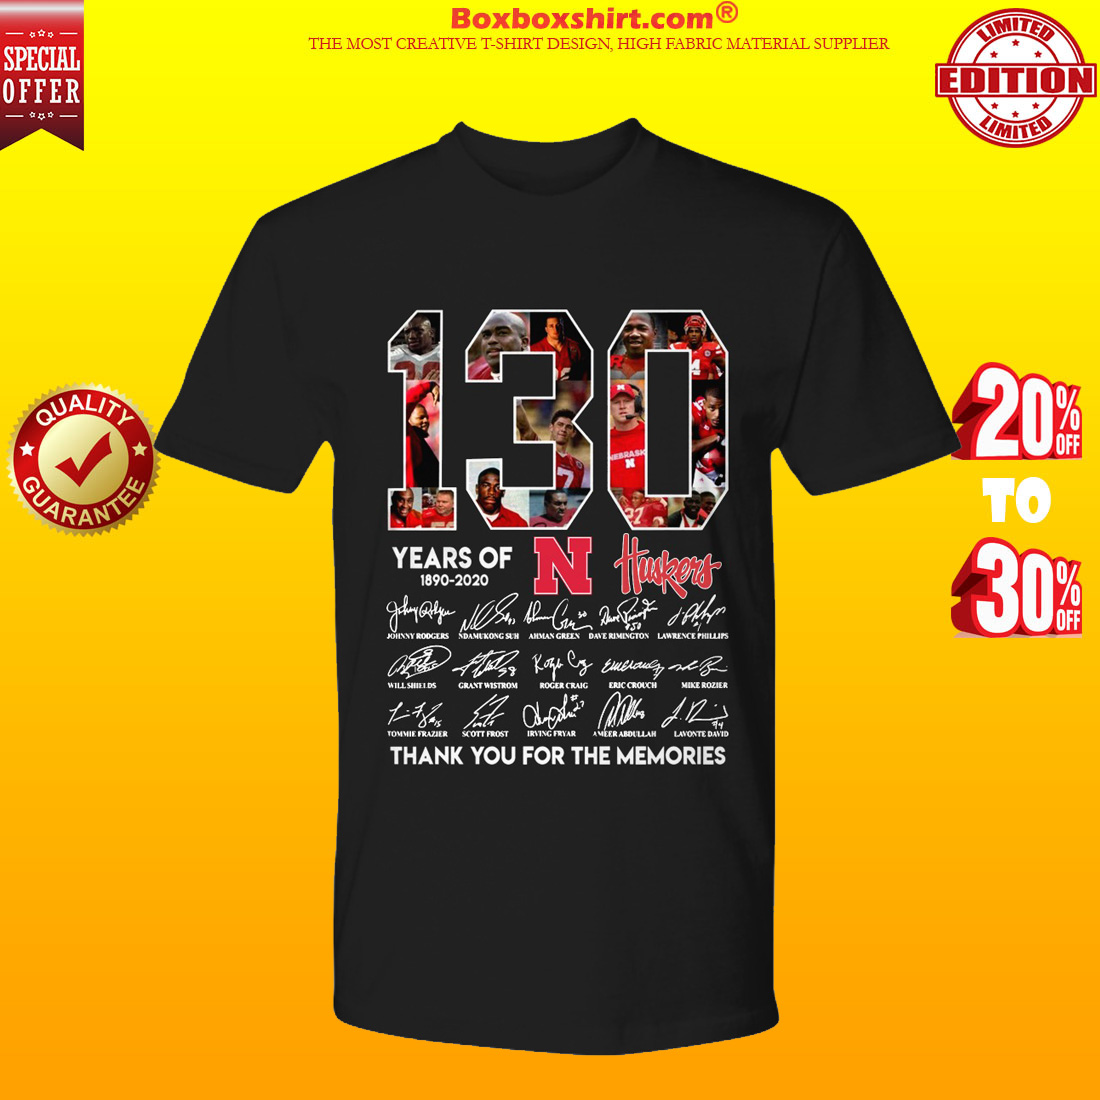 130 Years Of Huskers 1890 2020 shirt